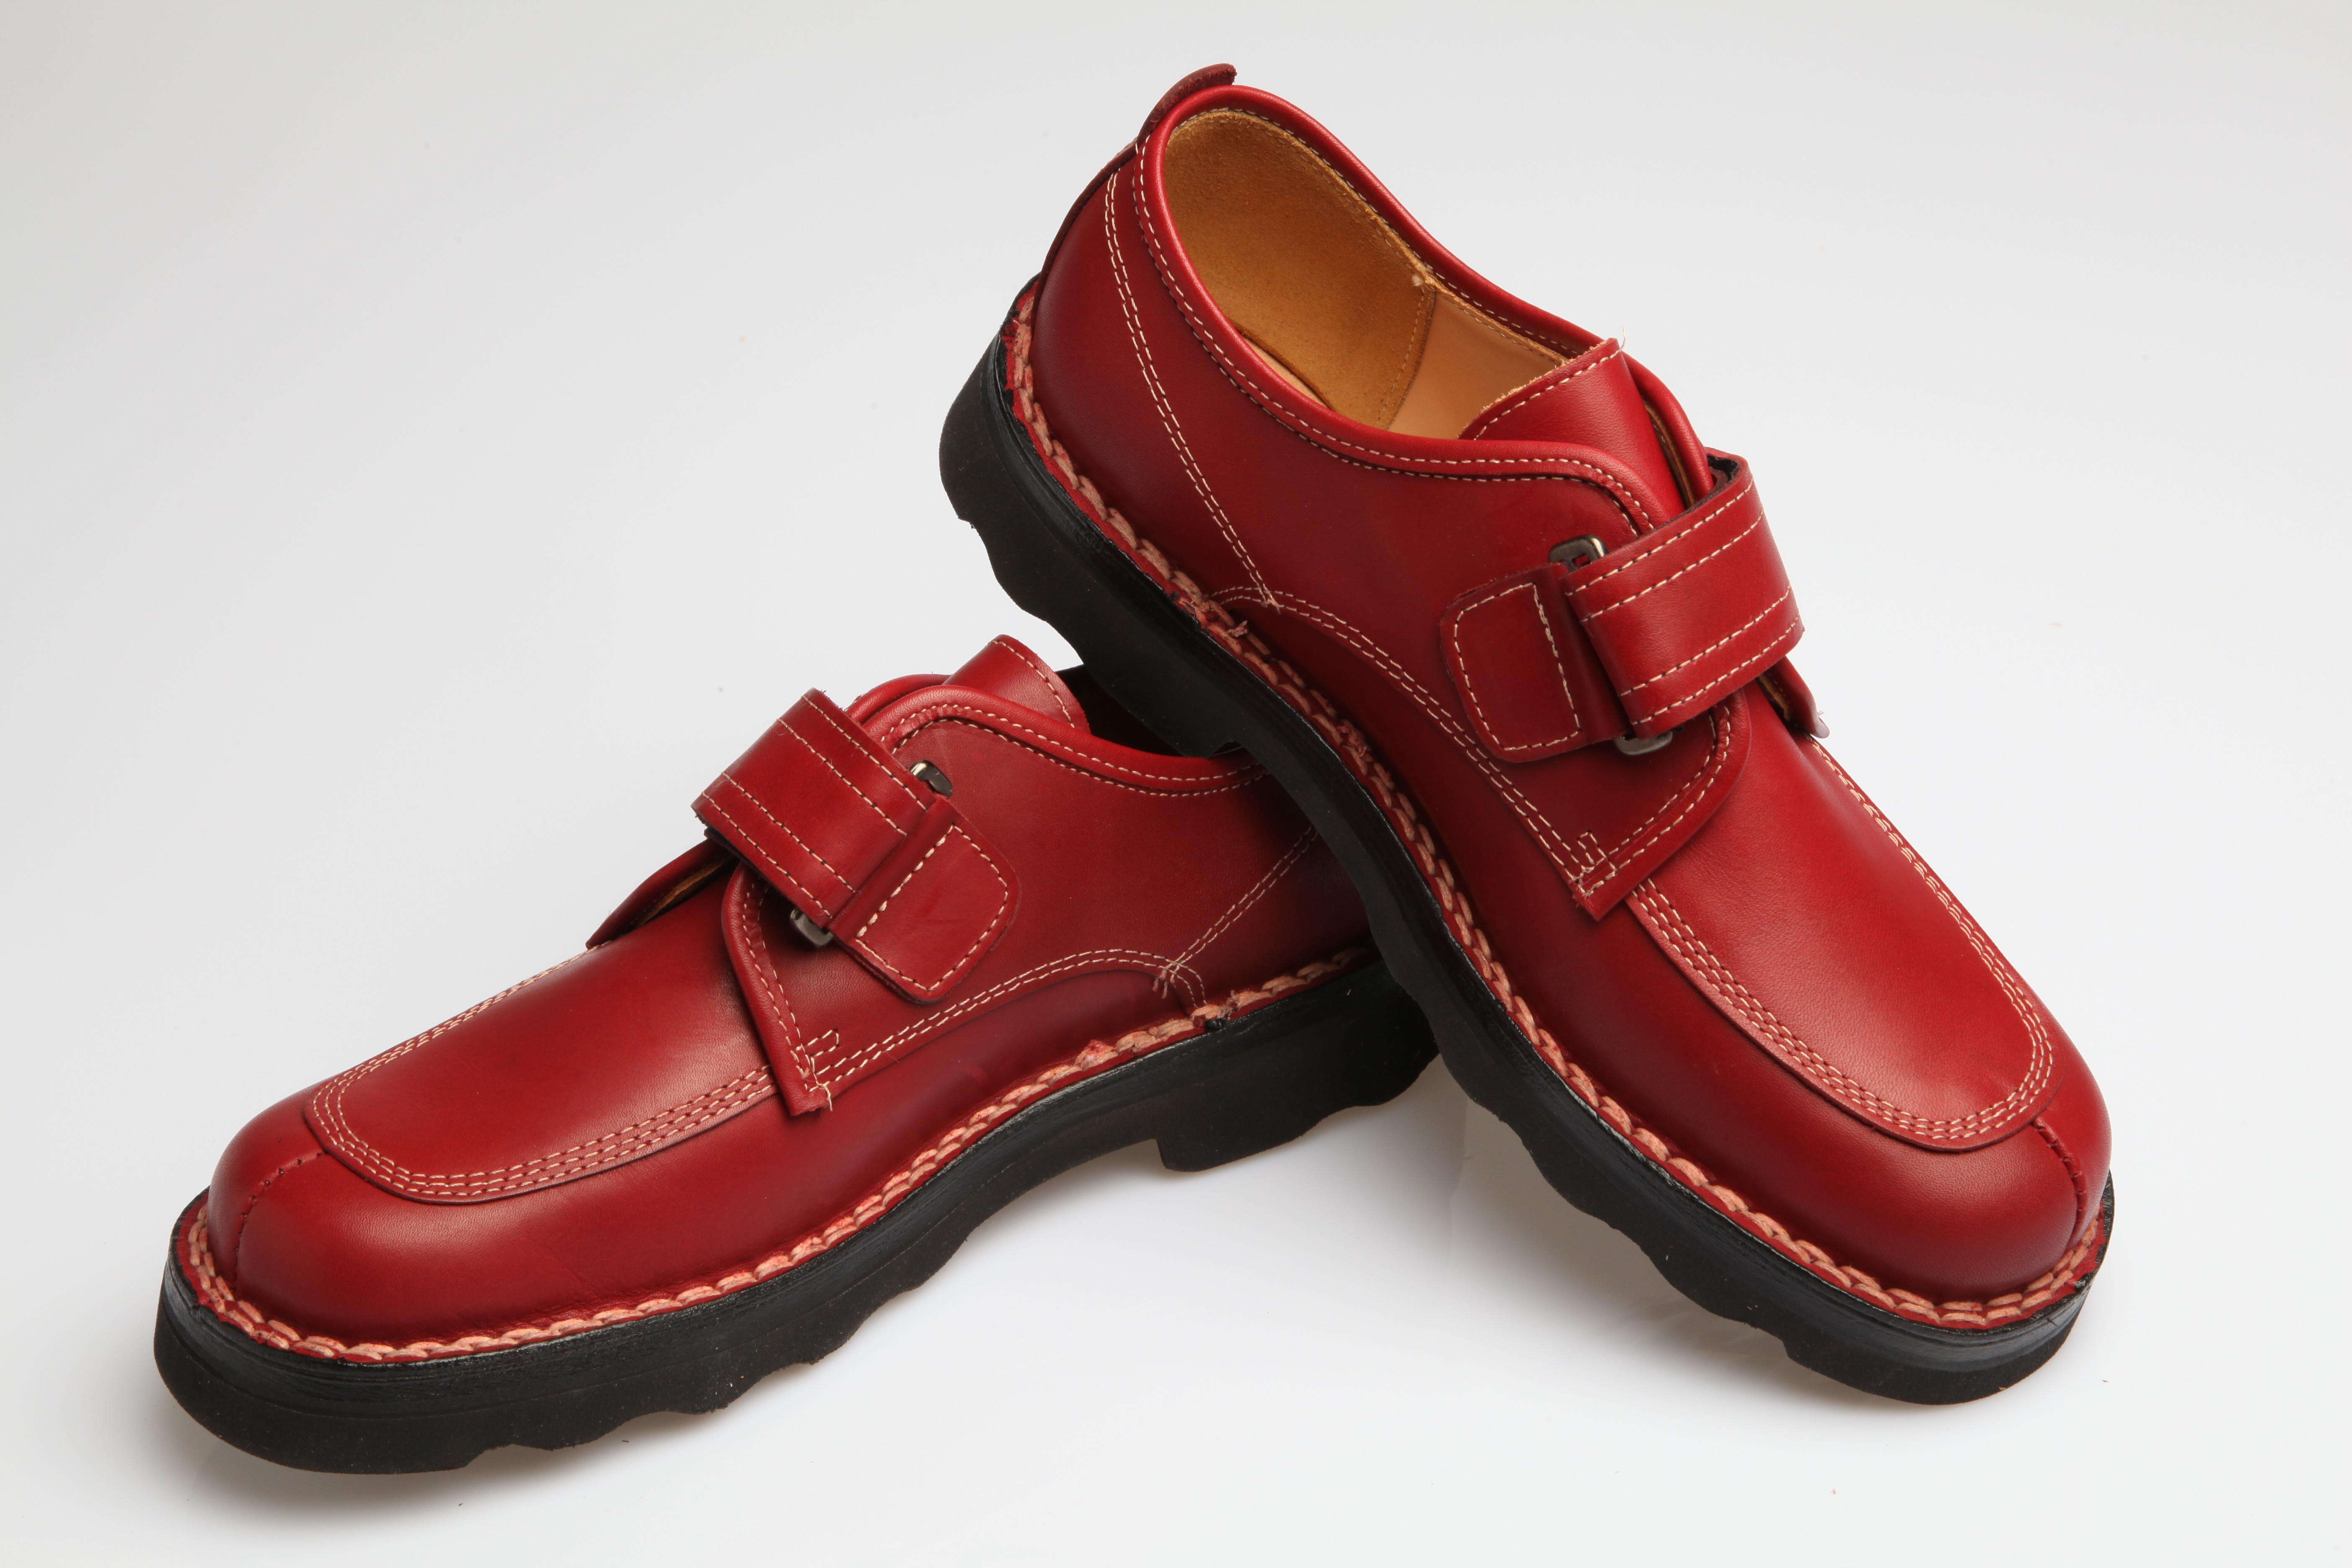 Chaussures Cuir Gatine Elry Rouge 42 Hommes: Chaussures